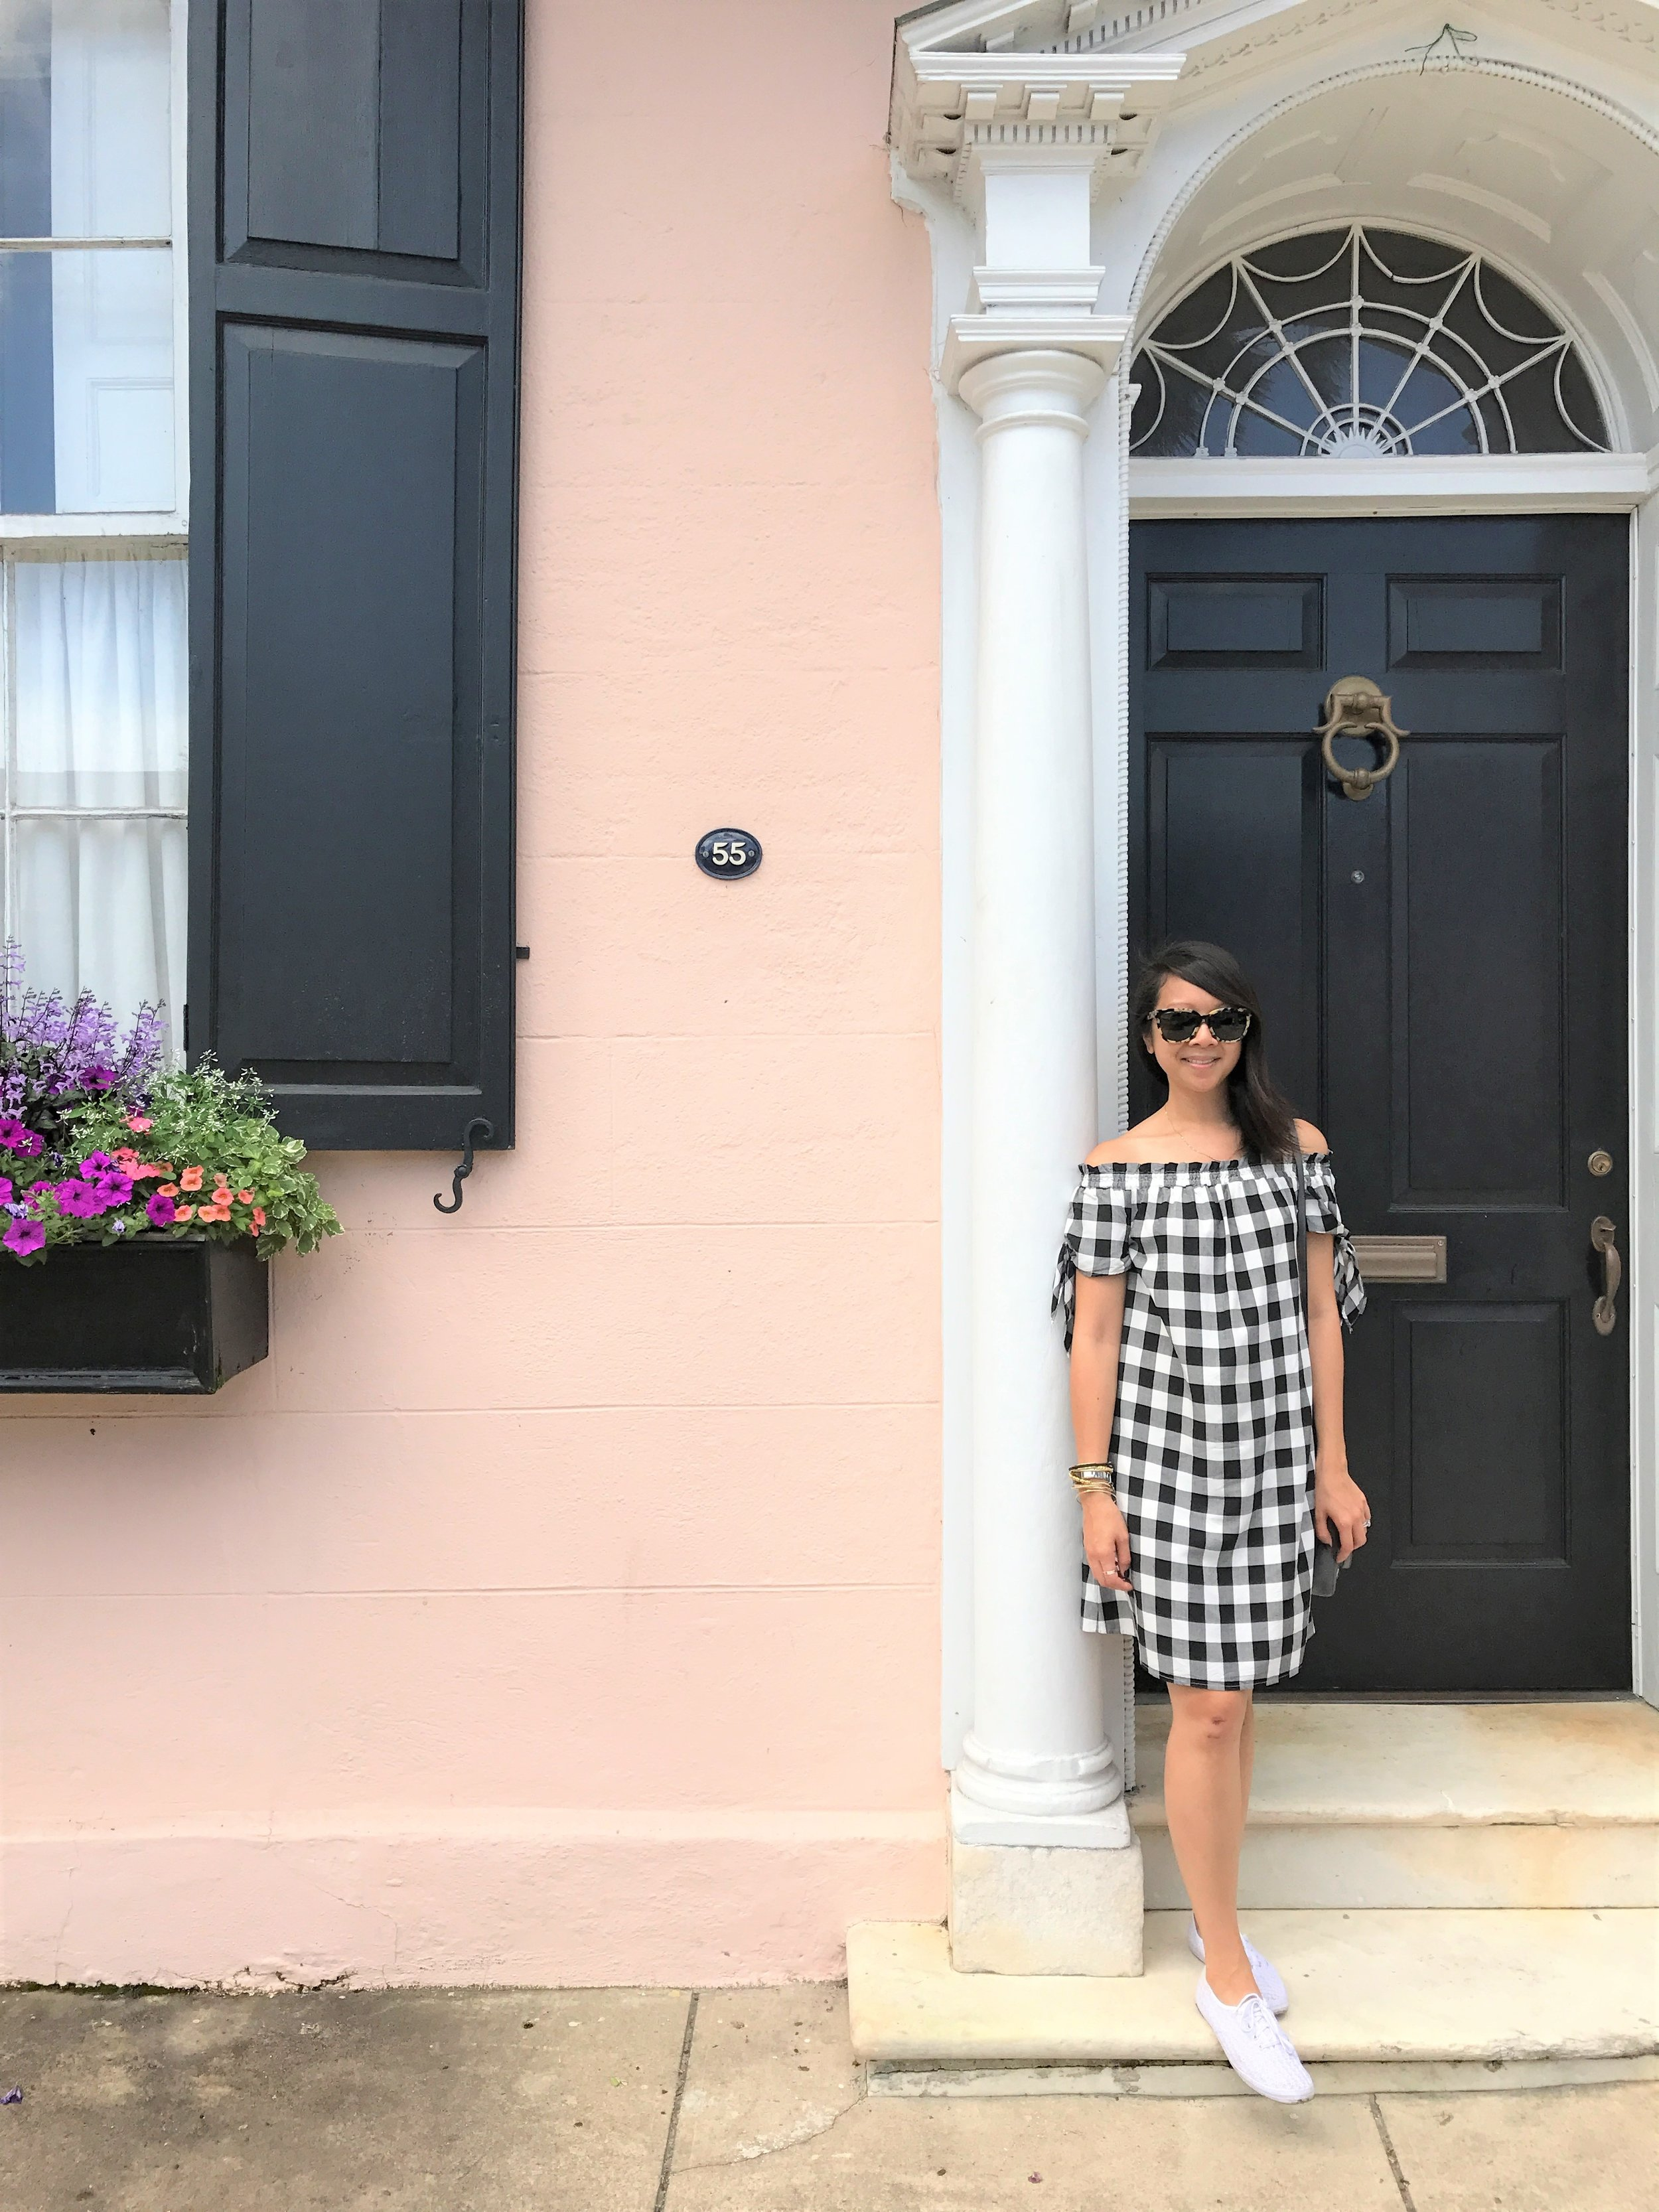 Now that we got all the  food  out of way, let us move on to the places we visited and the things we did while in Charleston (including stopping in front of colorful homes for a photo opp!).